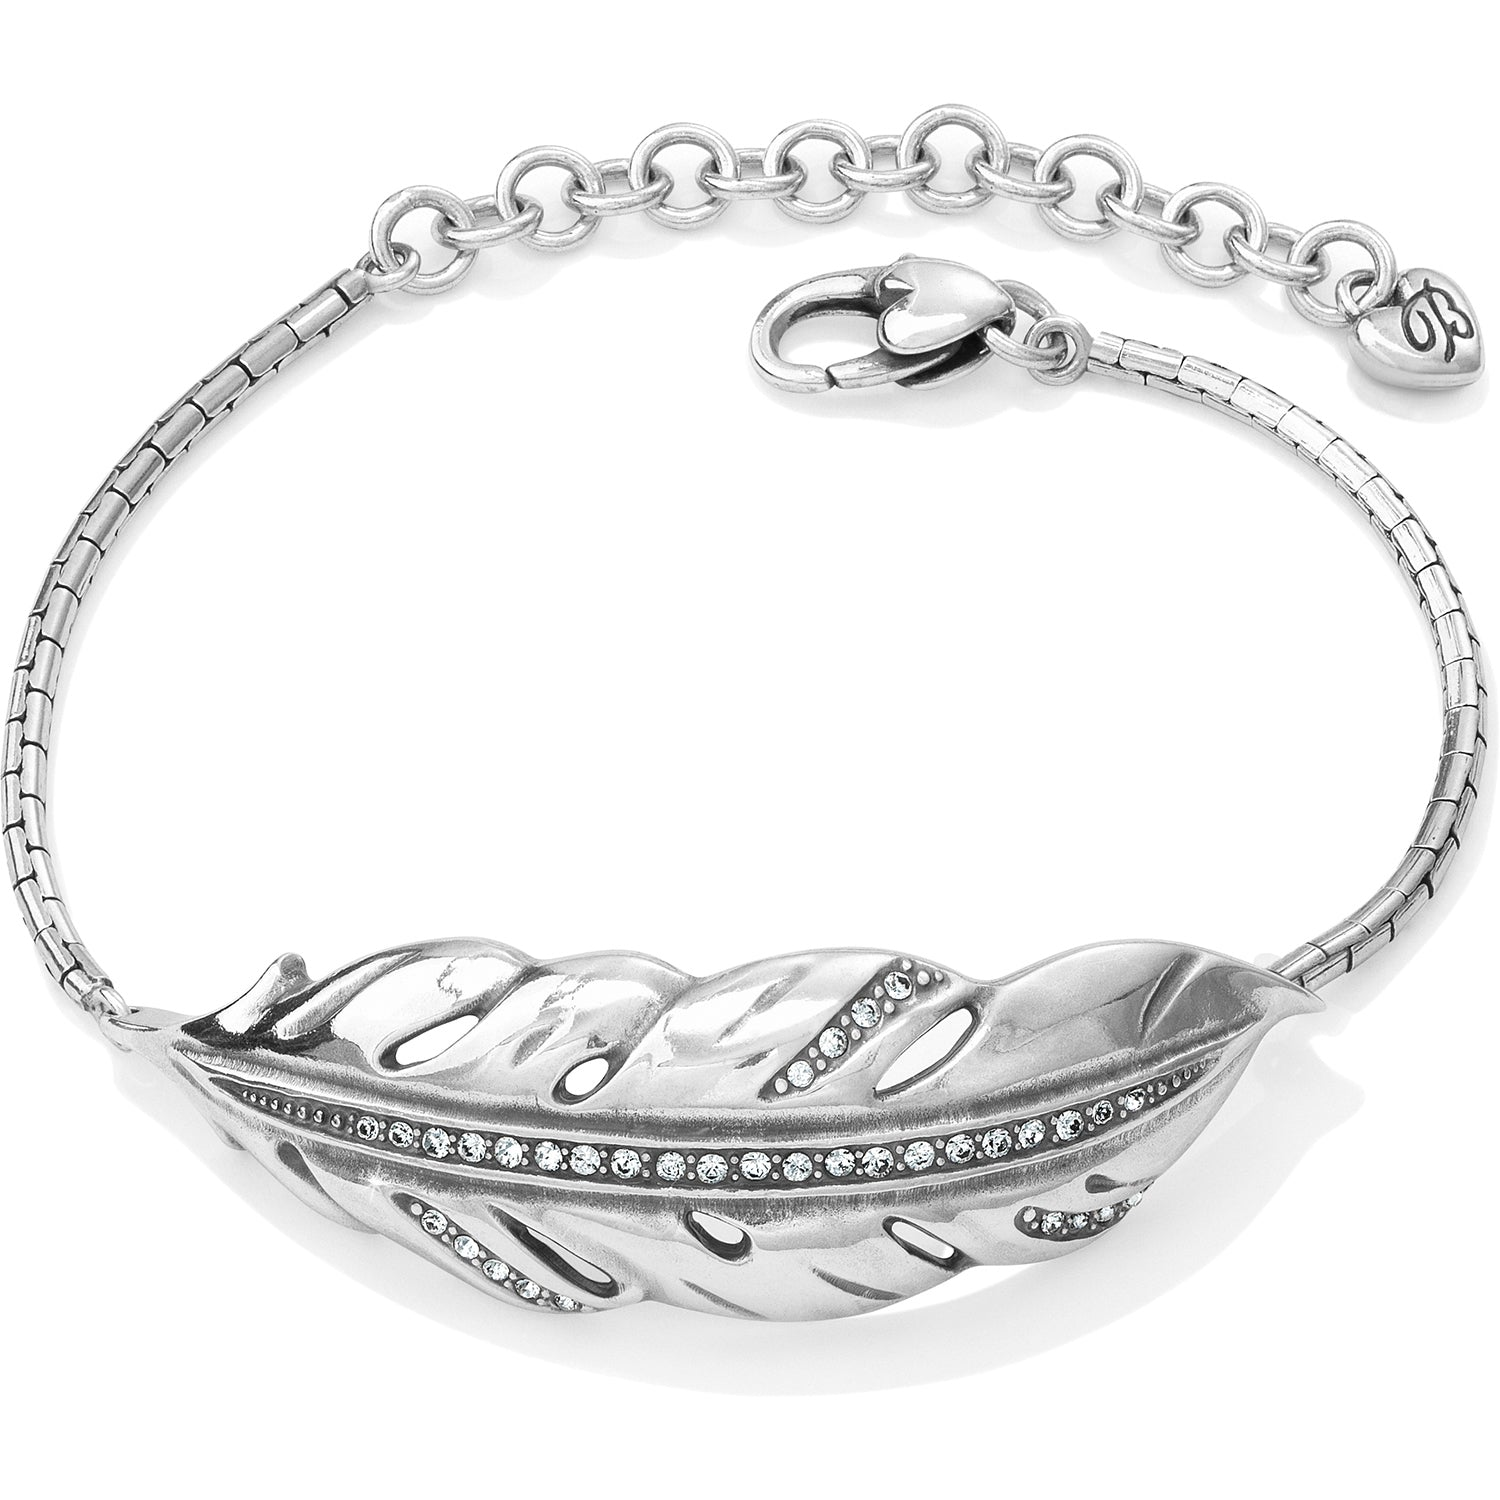 Brighton Jewelry Contempo Ice Feather Bracelet. Contempo Ice, inspired by wintry icicles, takes a lofty turn with this delicately beautiful feather, shimmering with Swarovski.